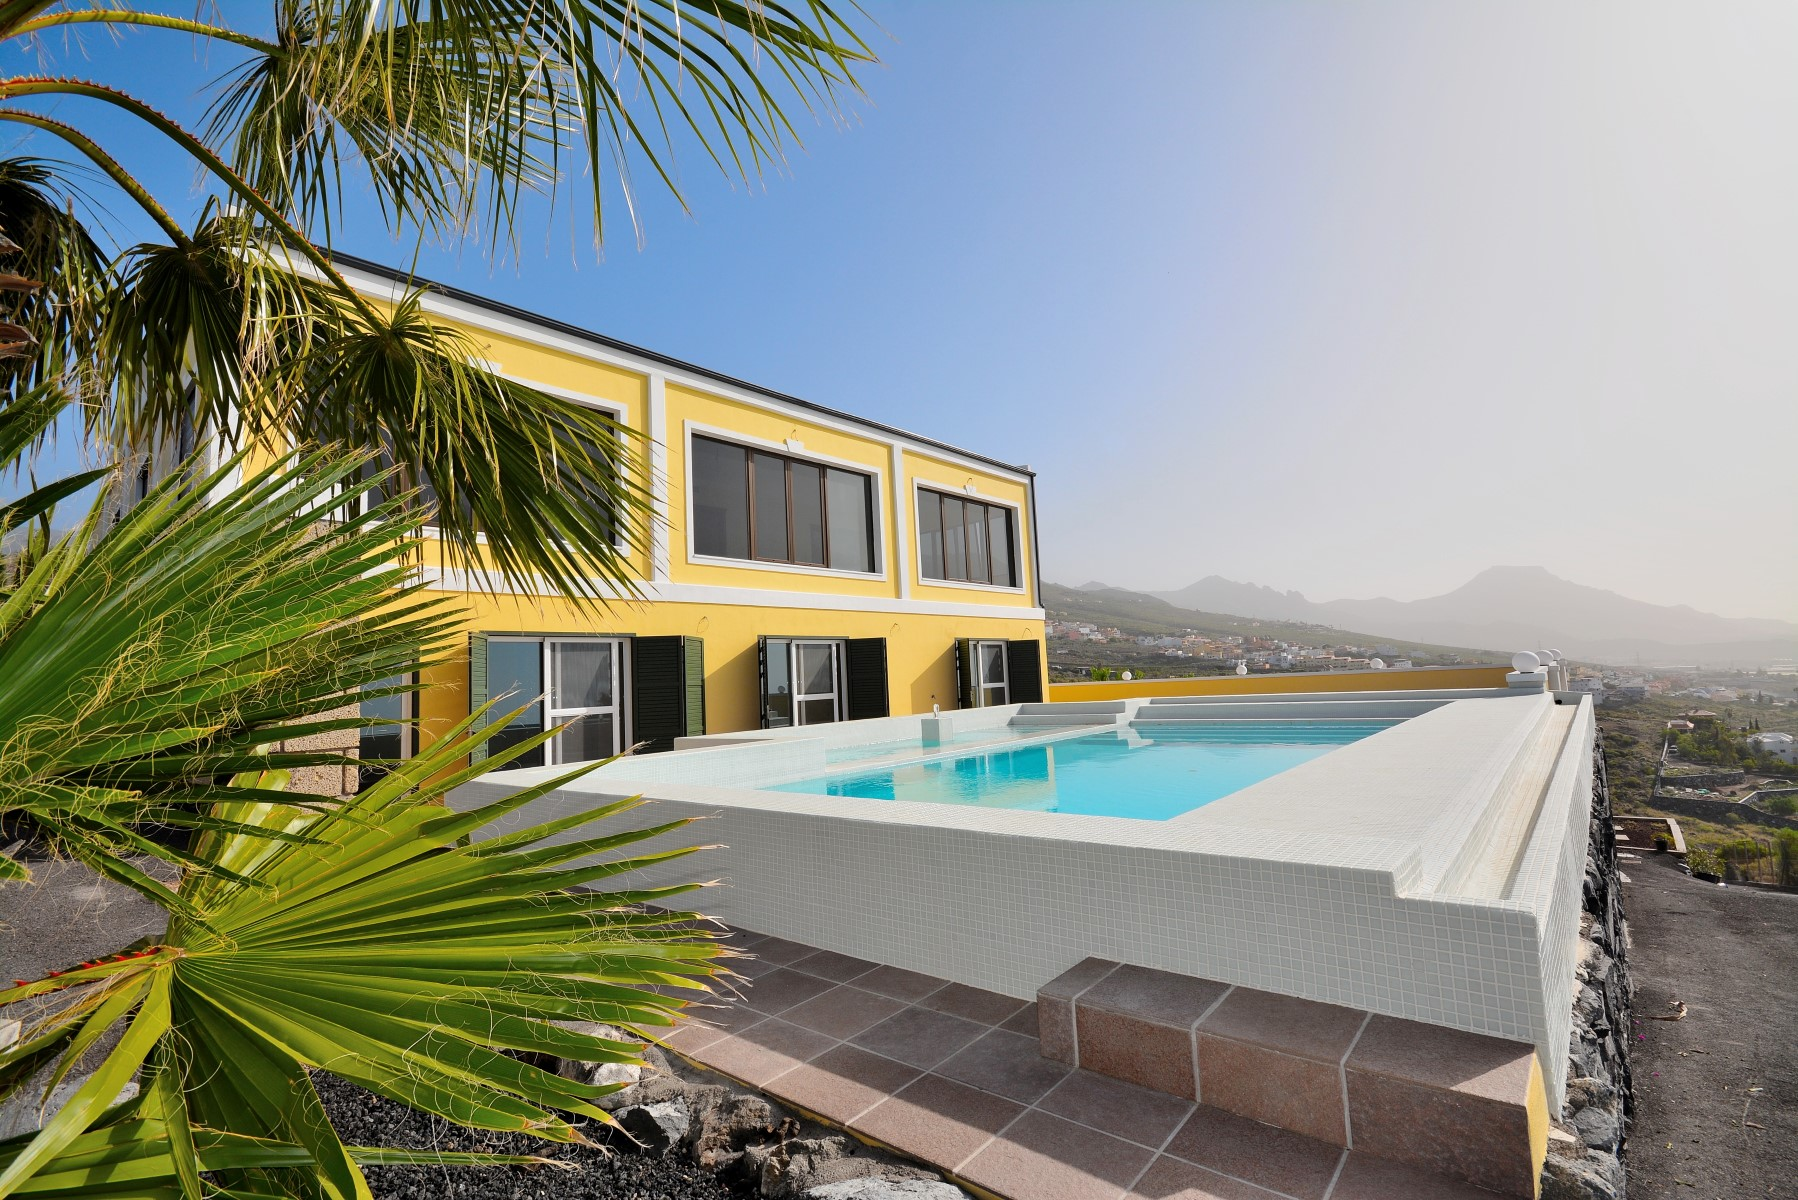 Single Family Home for Sale at Villa Iboybo Calle Iboybo Costa Adeje, Tenerife Canary Islands 38660 Spain